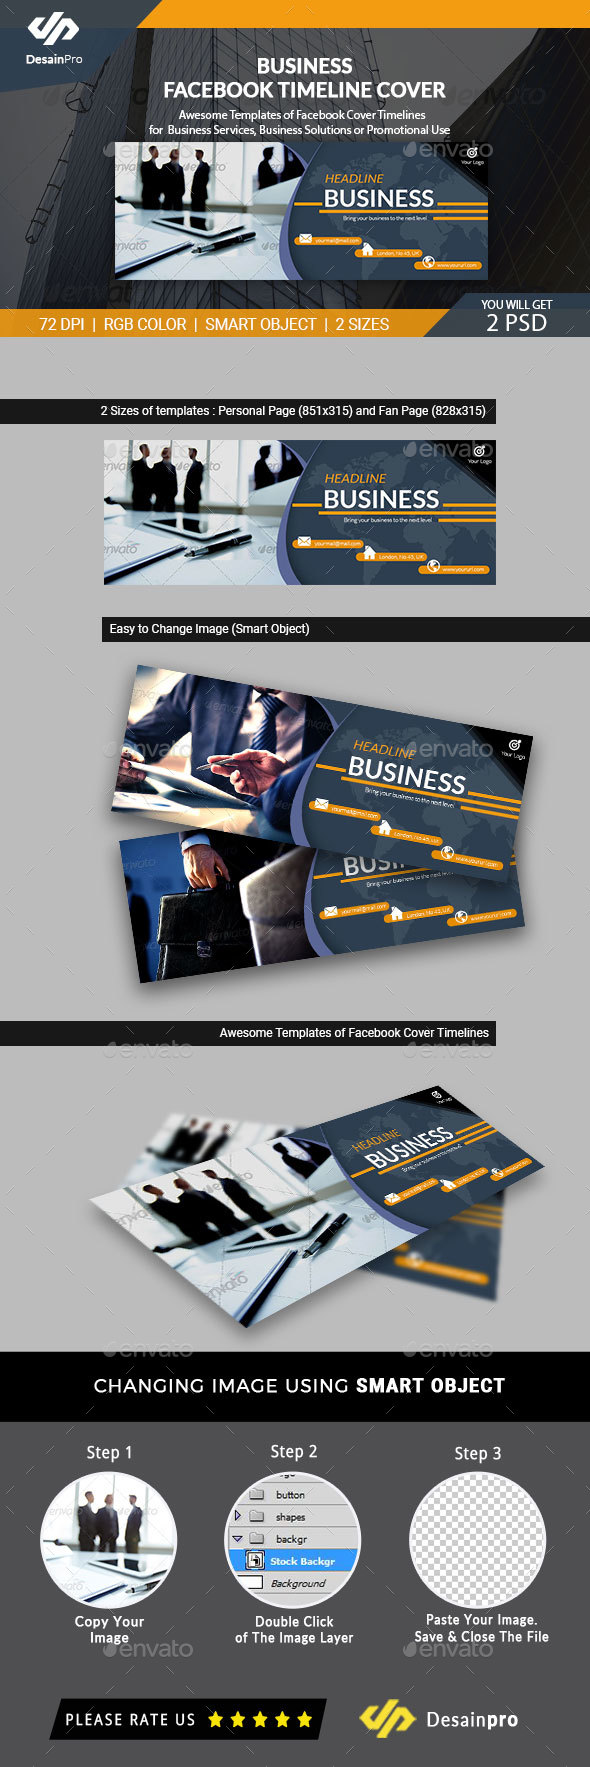 GraphicRiver Business Facebook Cover Timeline AR 21026679